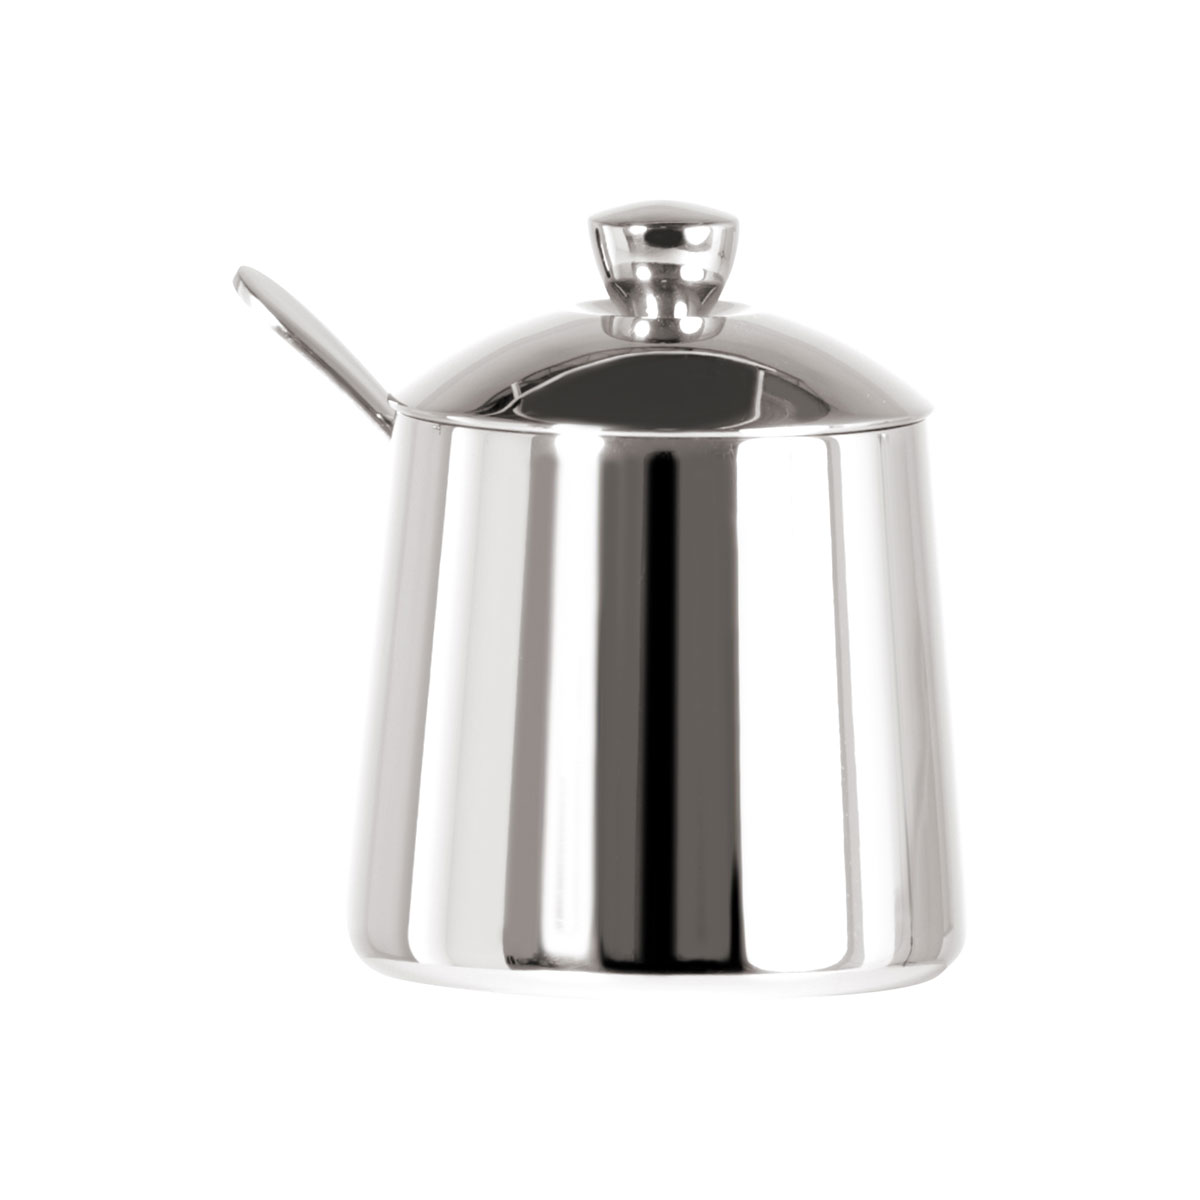 10 oz Stainless Steel Sugar Bowl